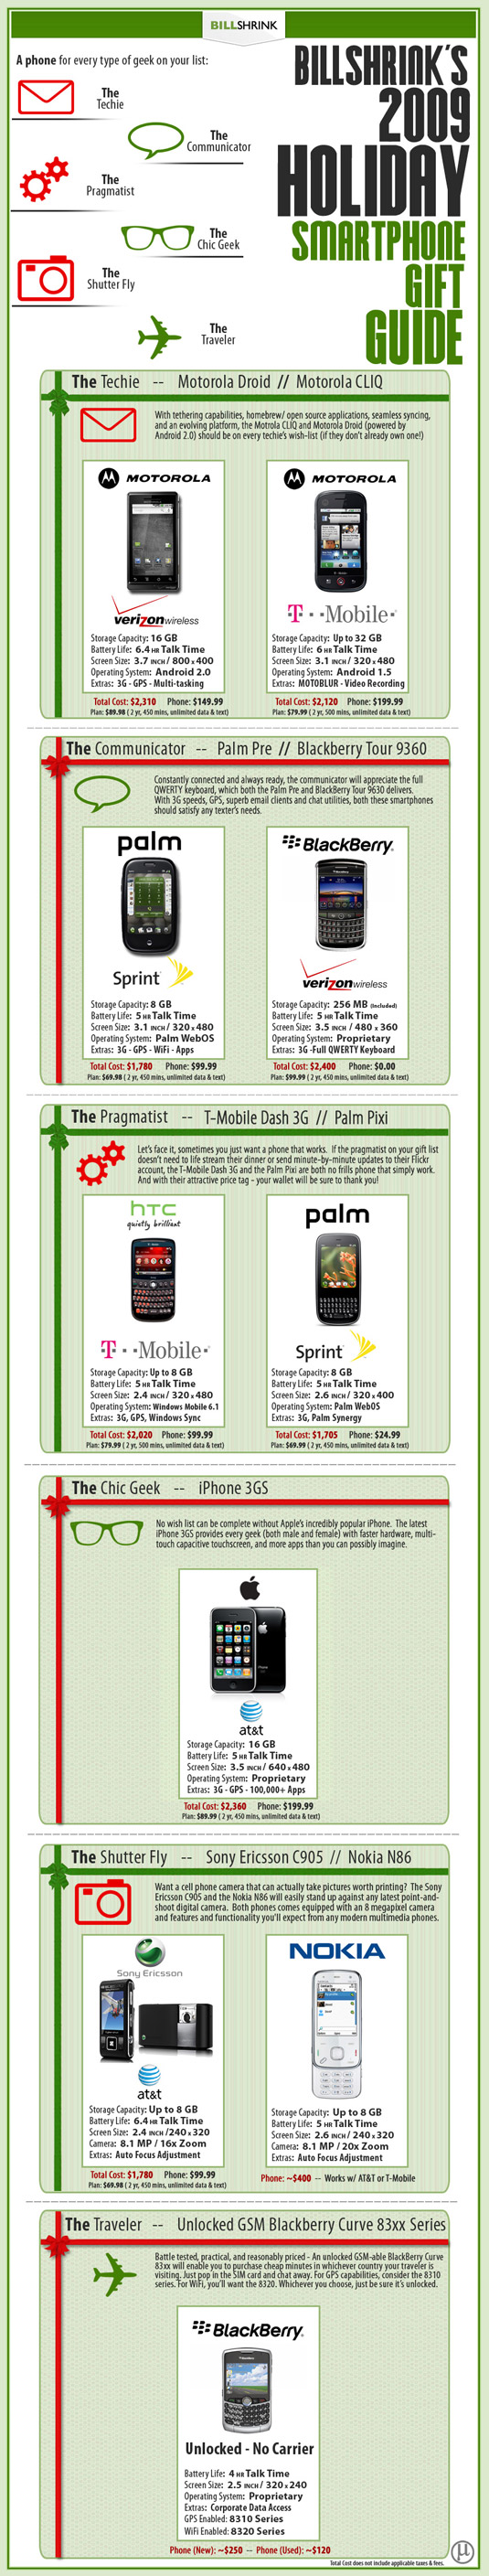 The 2009 Holiday Smartphone Gift Guide